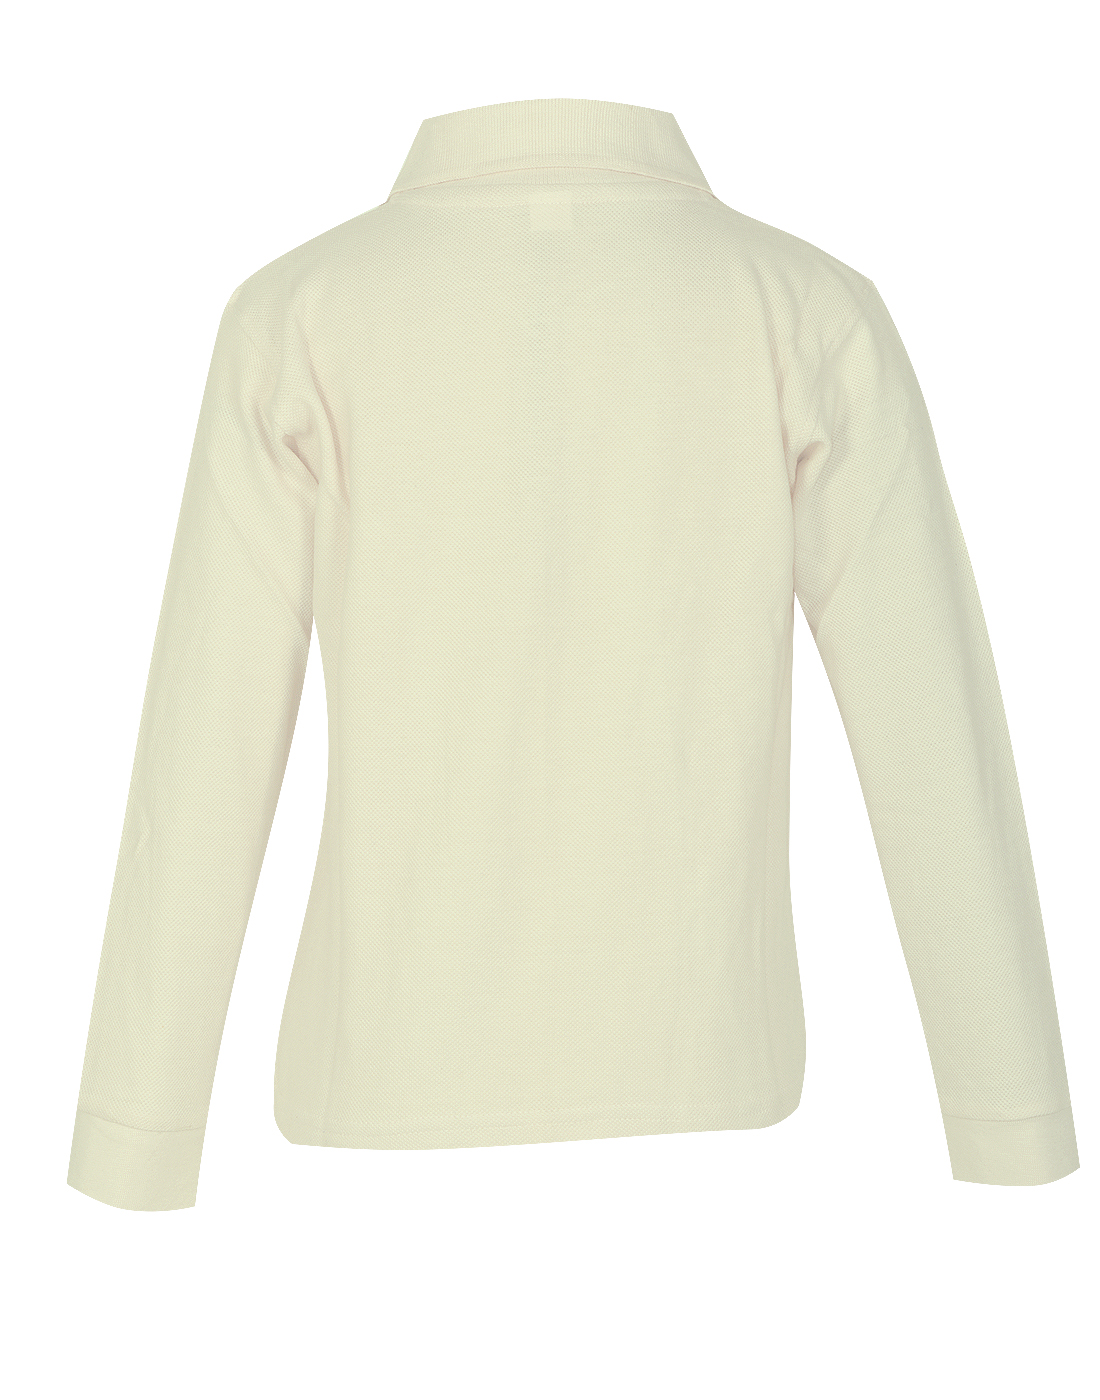 a786578b640d Gkidz Infants Long Sleeve Solid Cotton T Shirt (INF-BOYS-LSLV-POLO-WHITE)